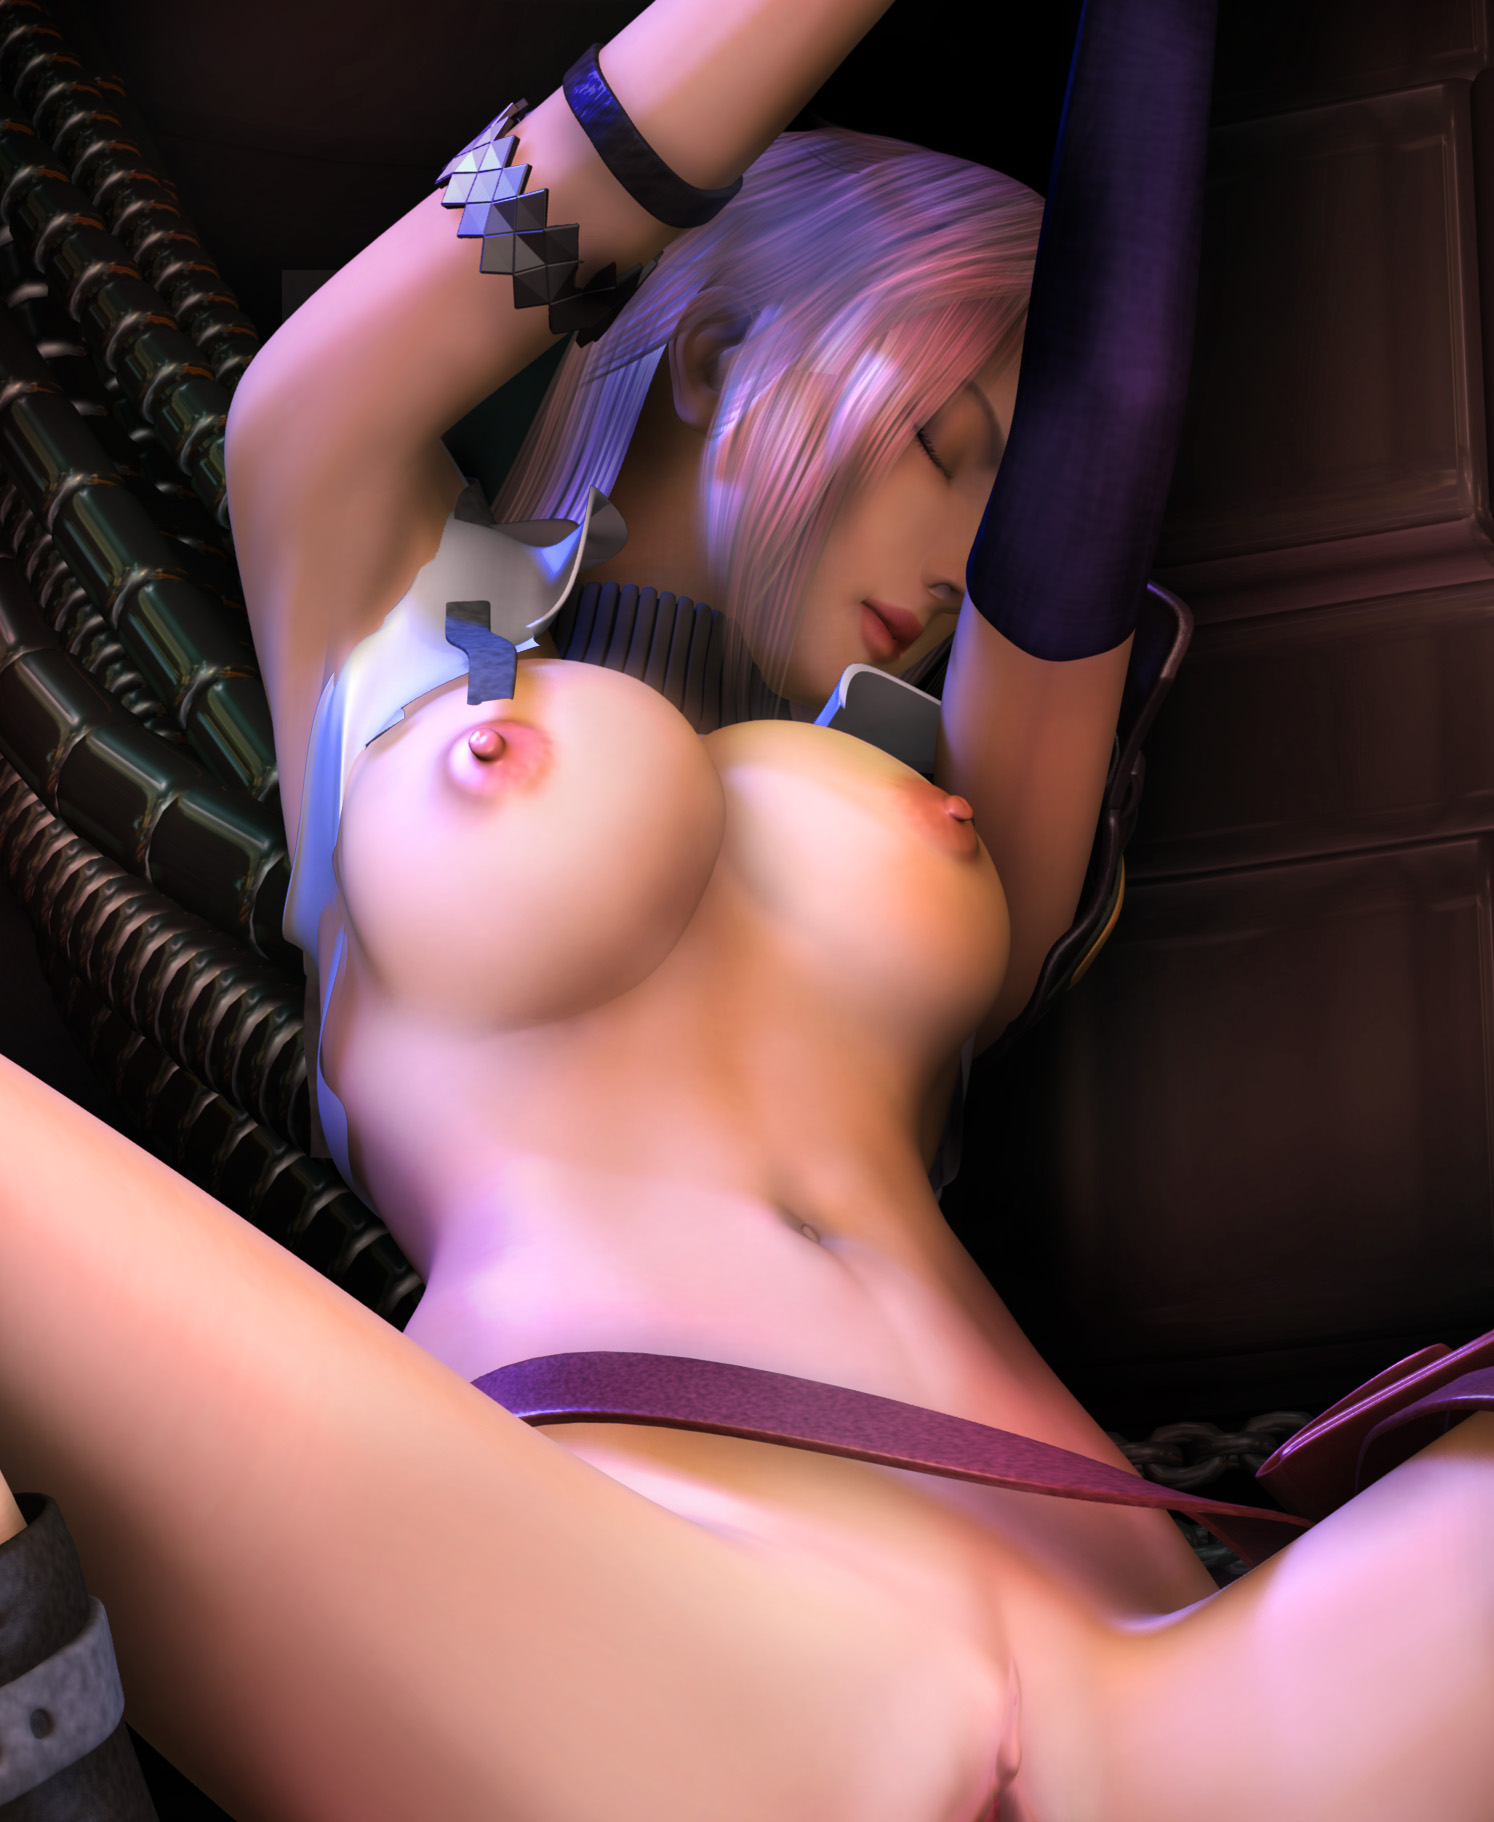 girls porn Final fantasy